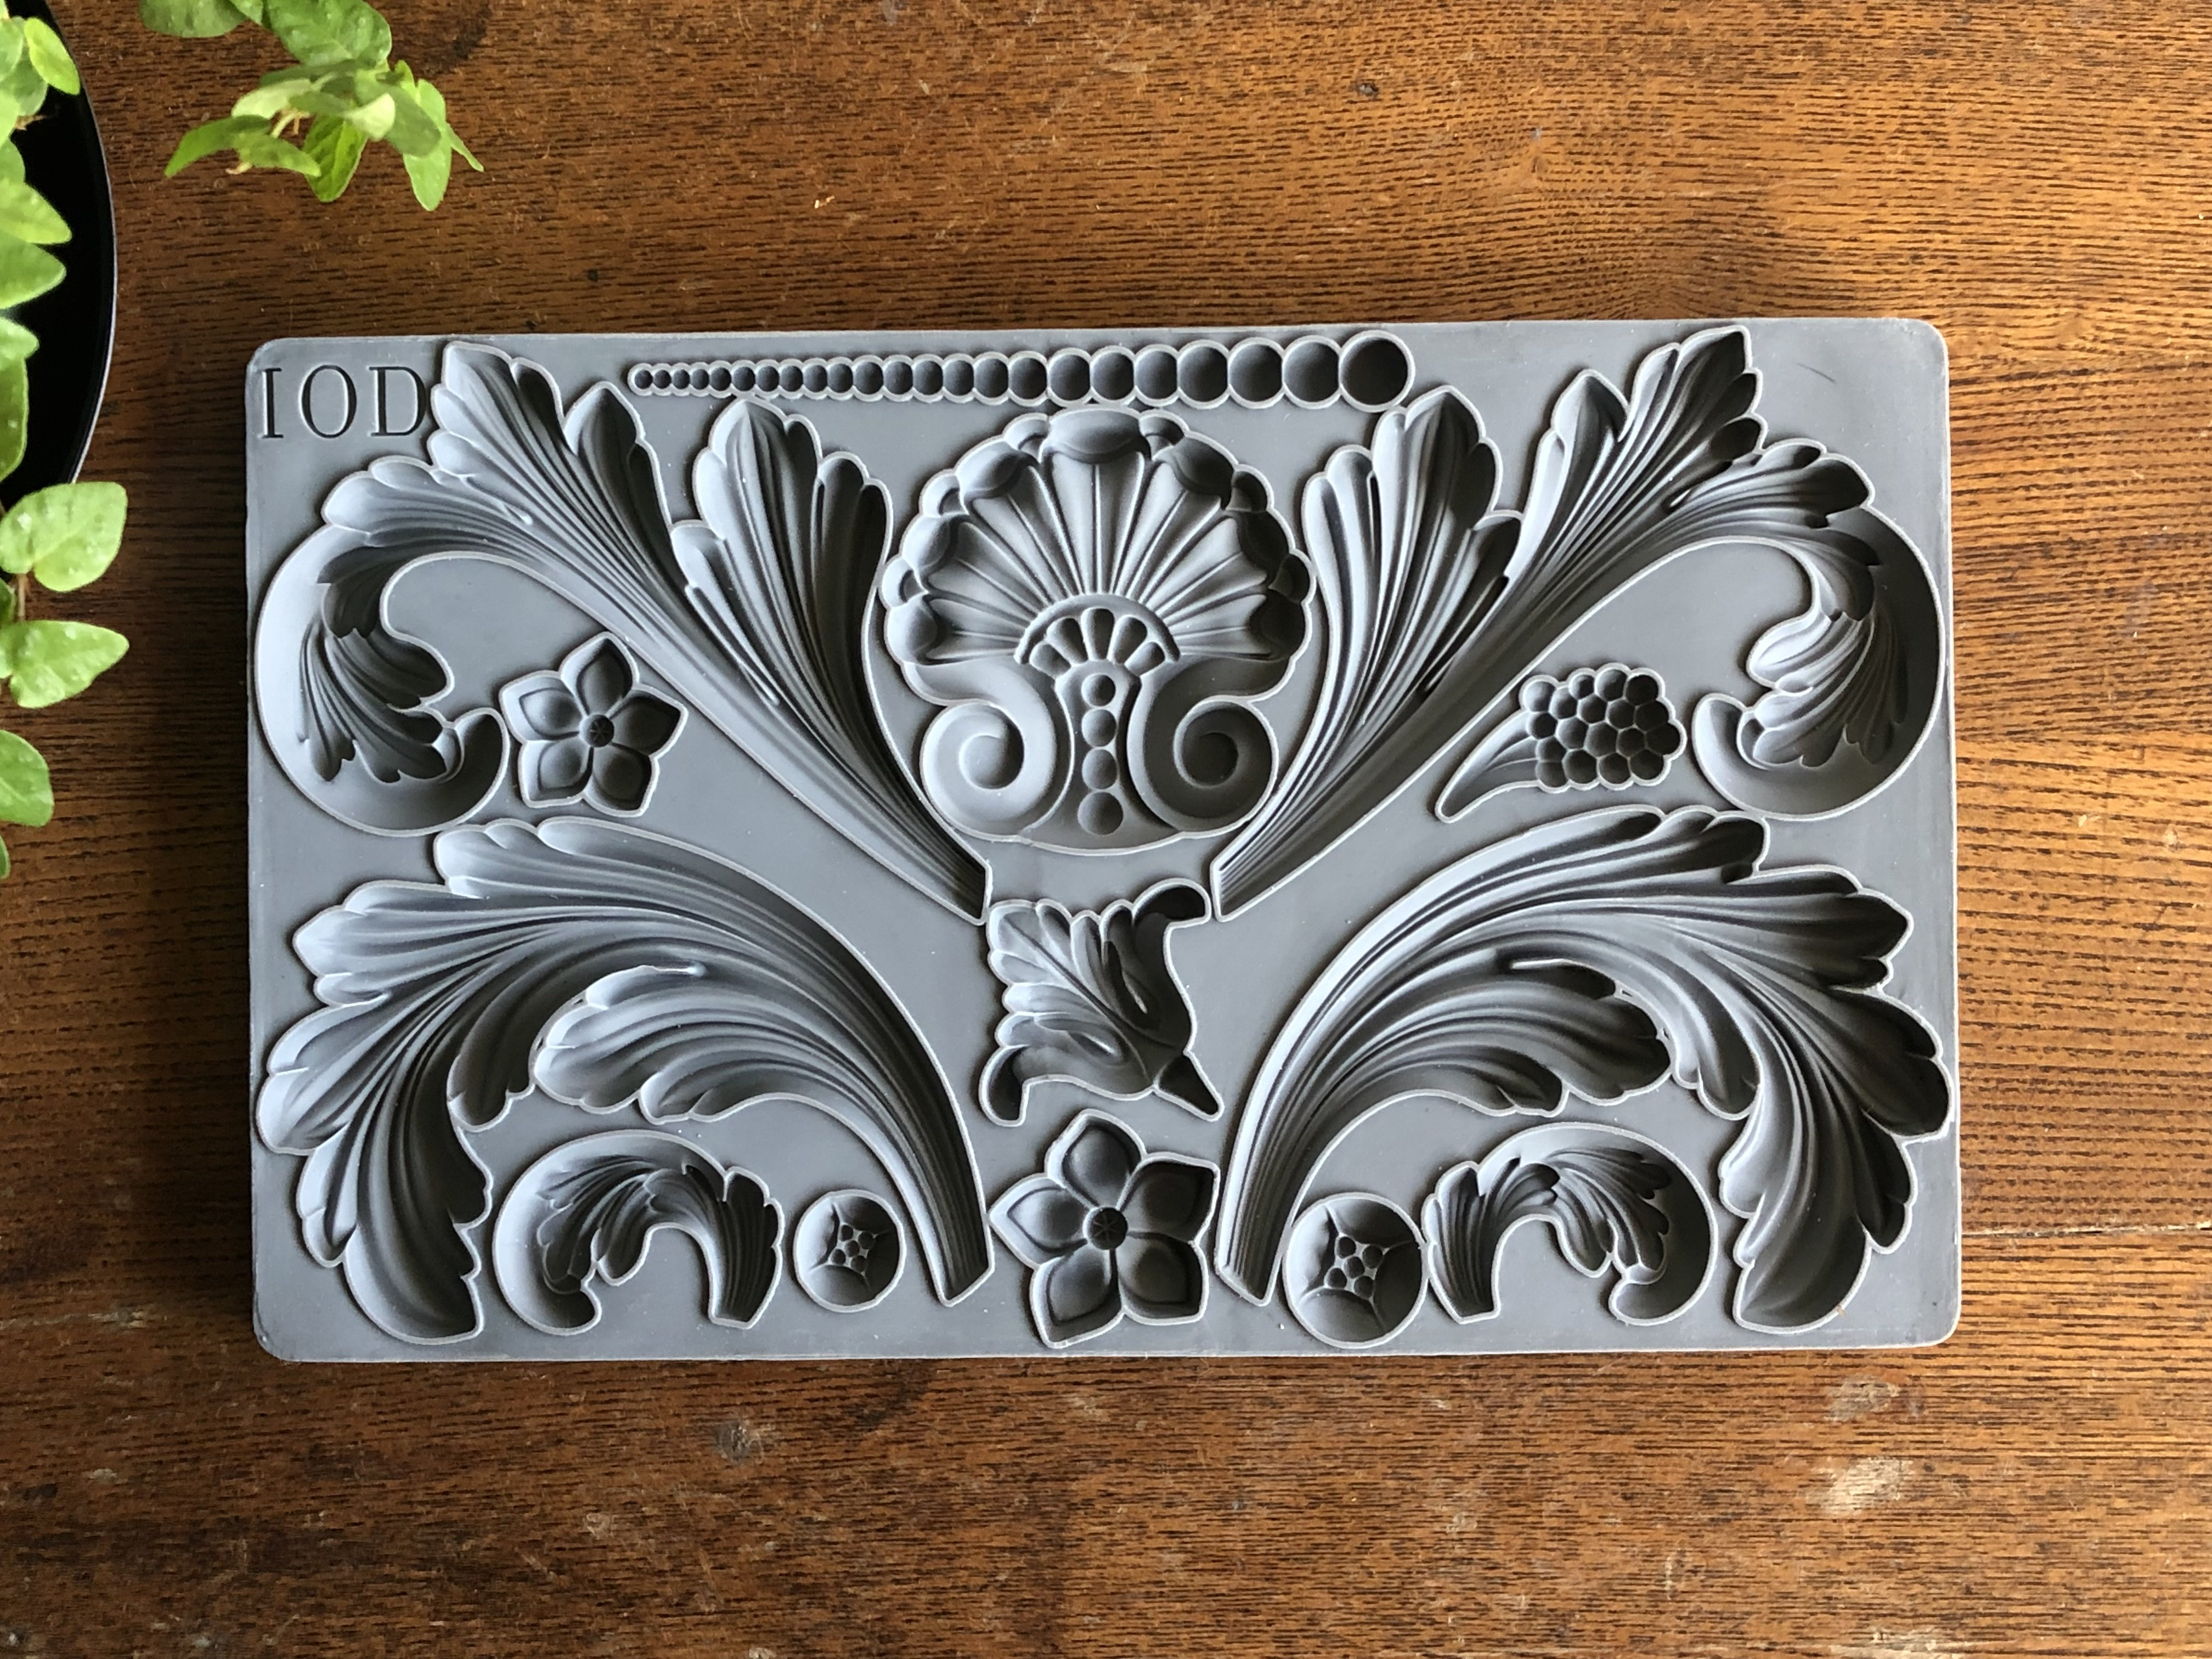 Have fun adding texture to your projects with these Iron Orchid Designs Decor Moulds -Acanthus Scroll   www.raggedy-bits.com   #raggedybits #IOD #AcanthusScroll #texture #DIY #Moulds